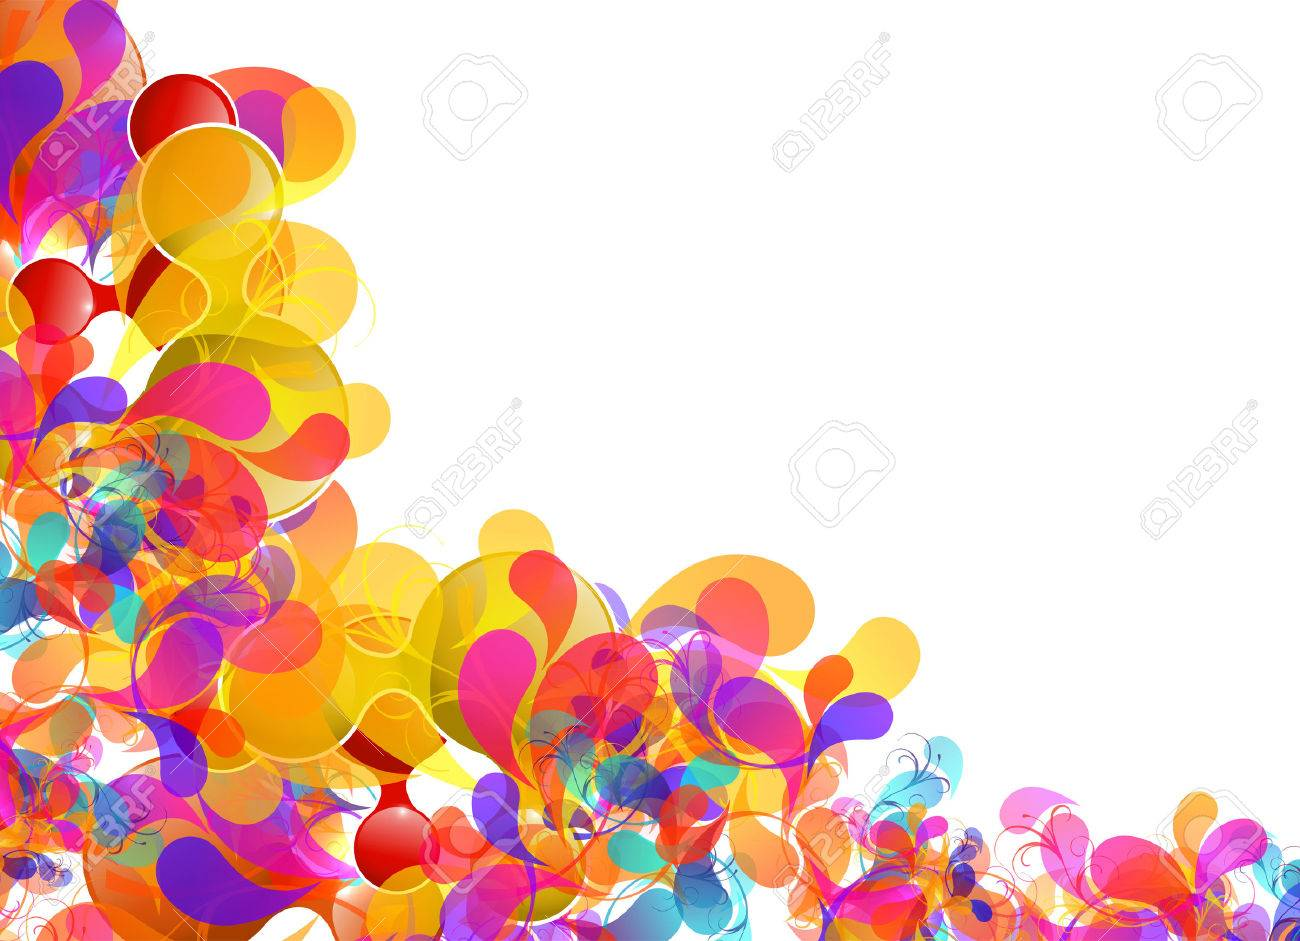 Abstract colorful design, easy editable Stock Vector - 23180037